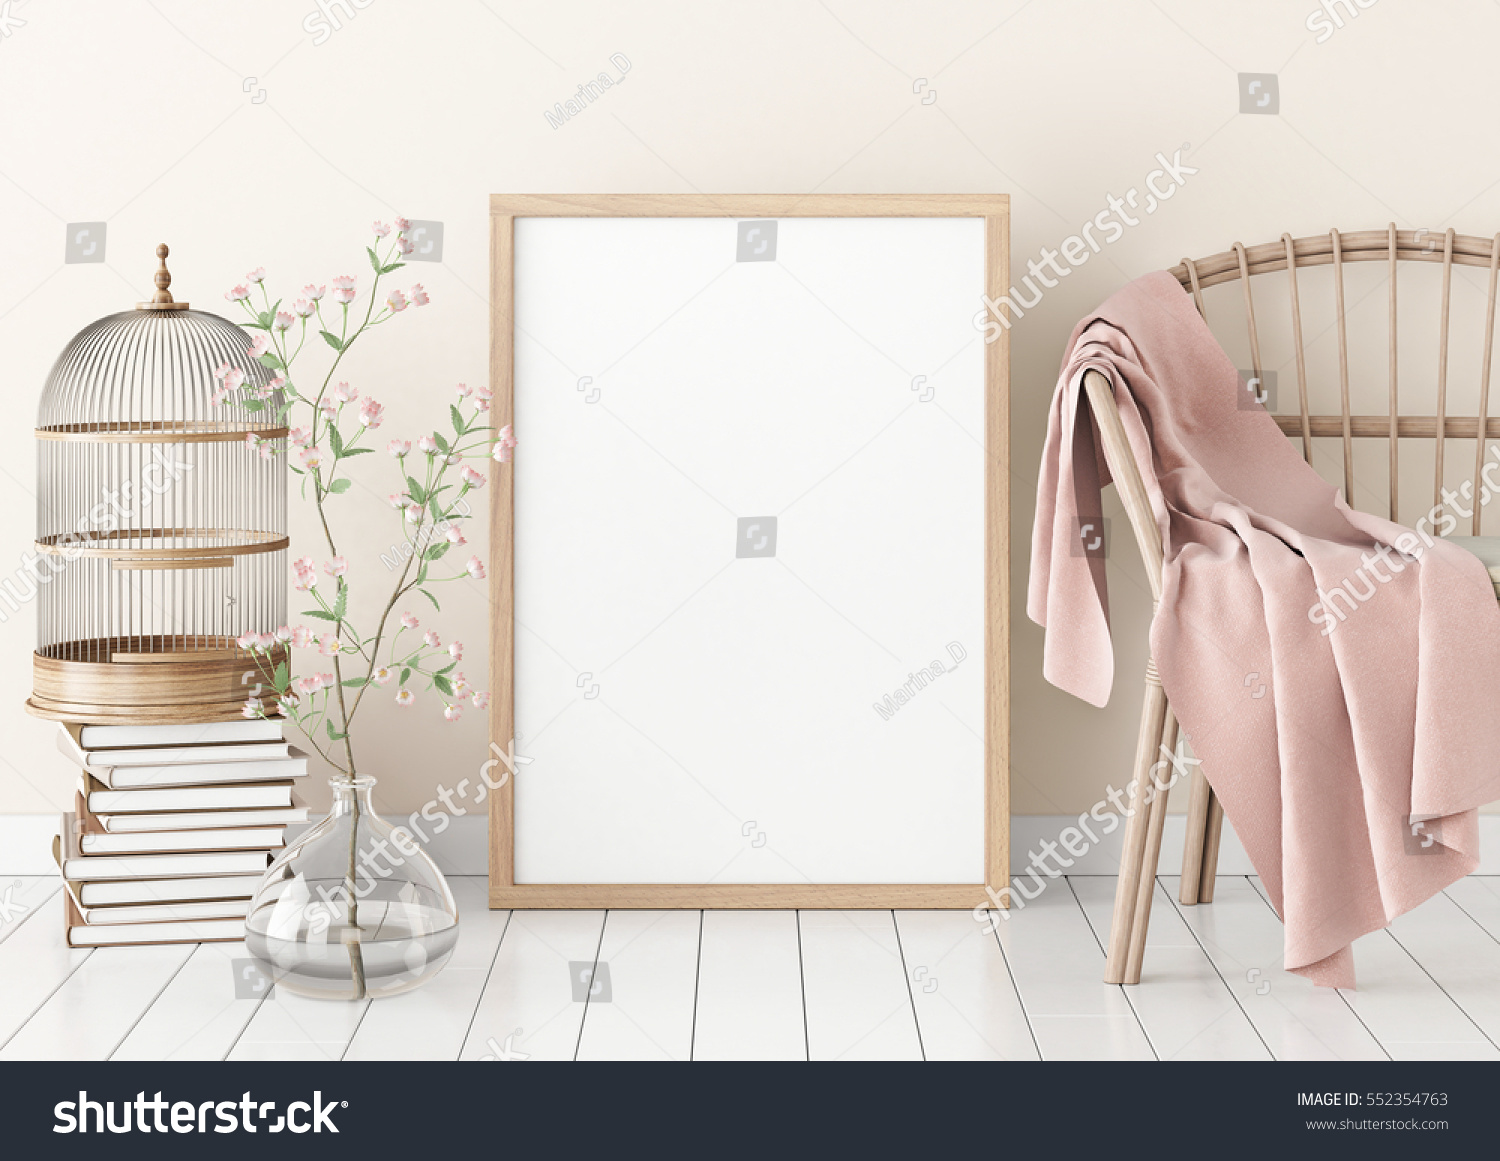 Interior Poster Mockup Empty Wooden Frame Stock Illustration ...